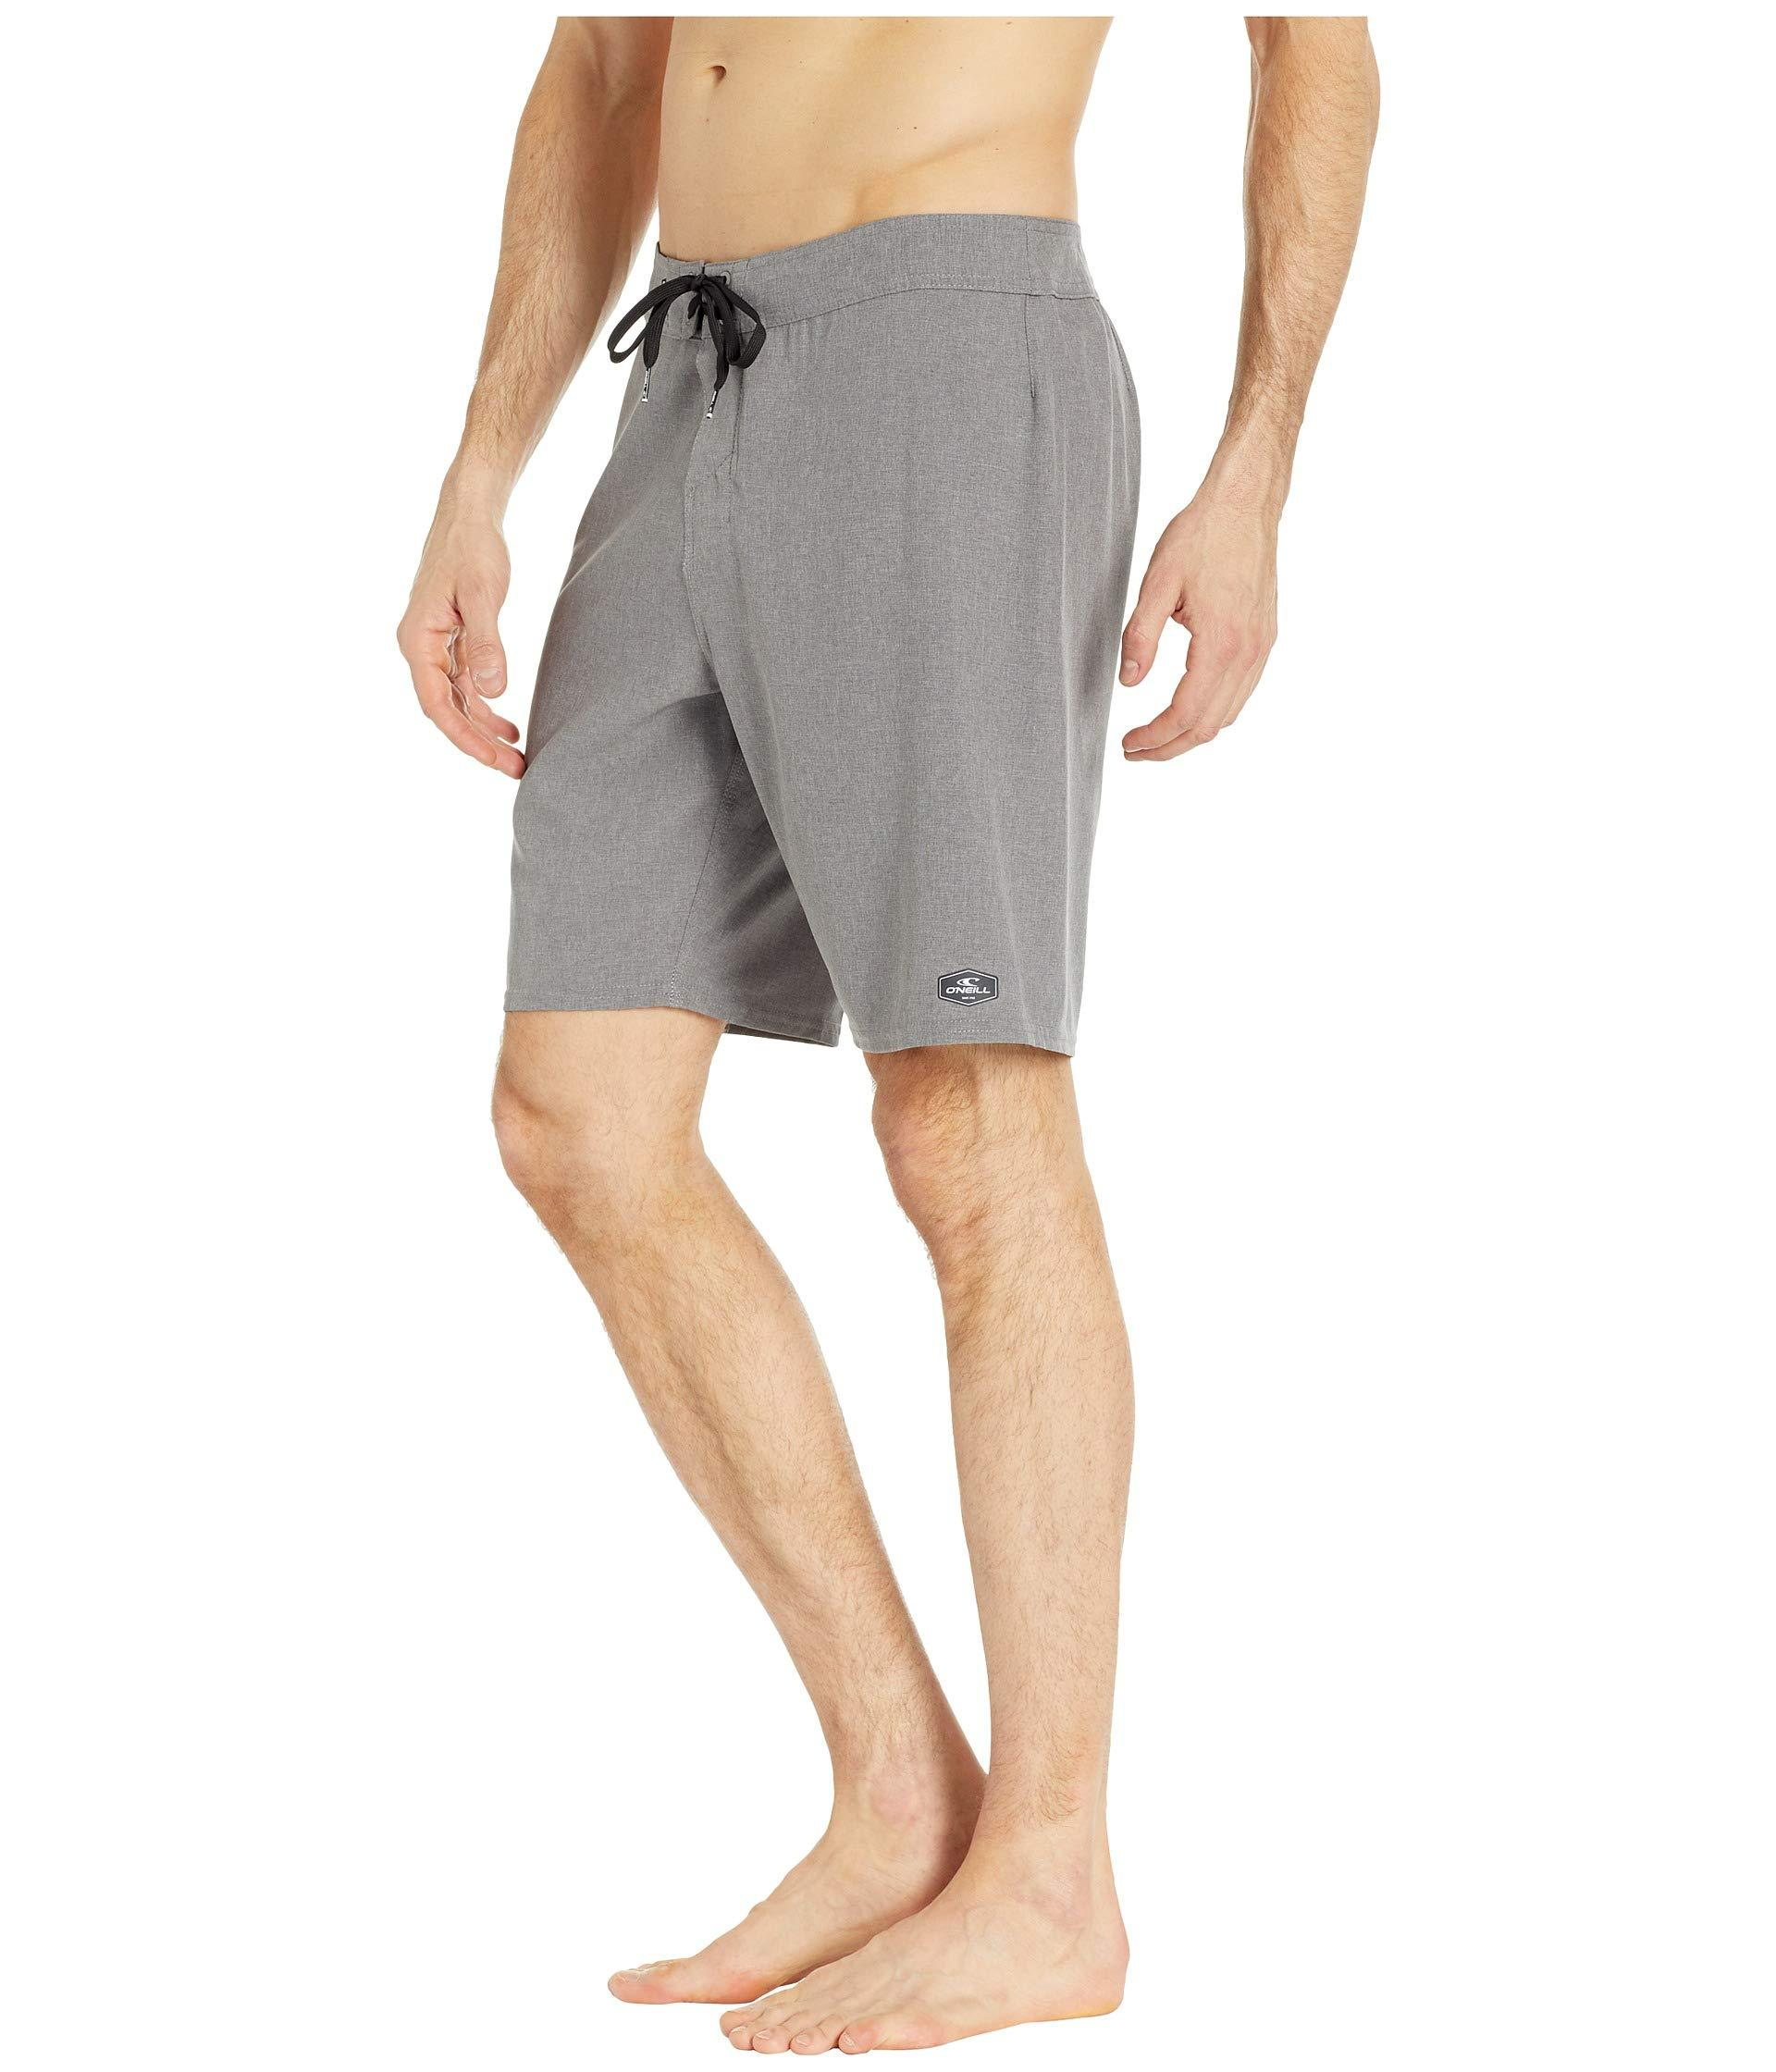 e6ab516d78 Lyst - O'neill Sportswear Hyperfreak Solid Boardshorts (camo) Men's  Swimwear in Gray for Men